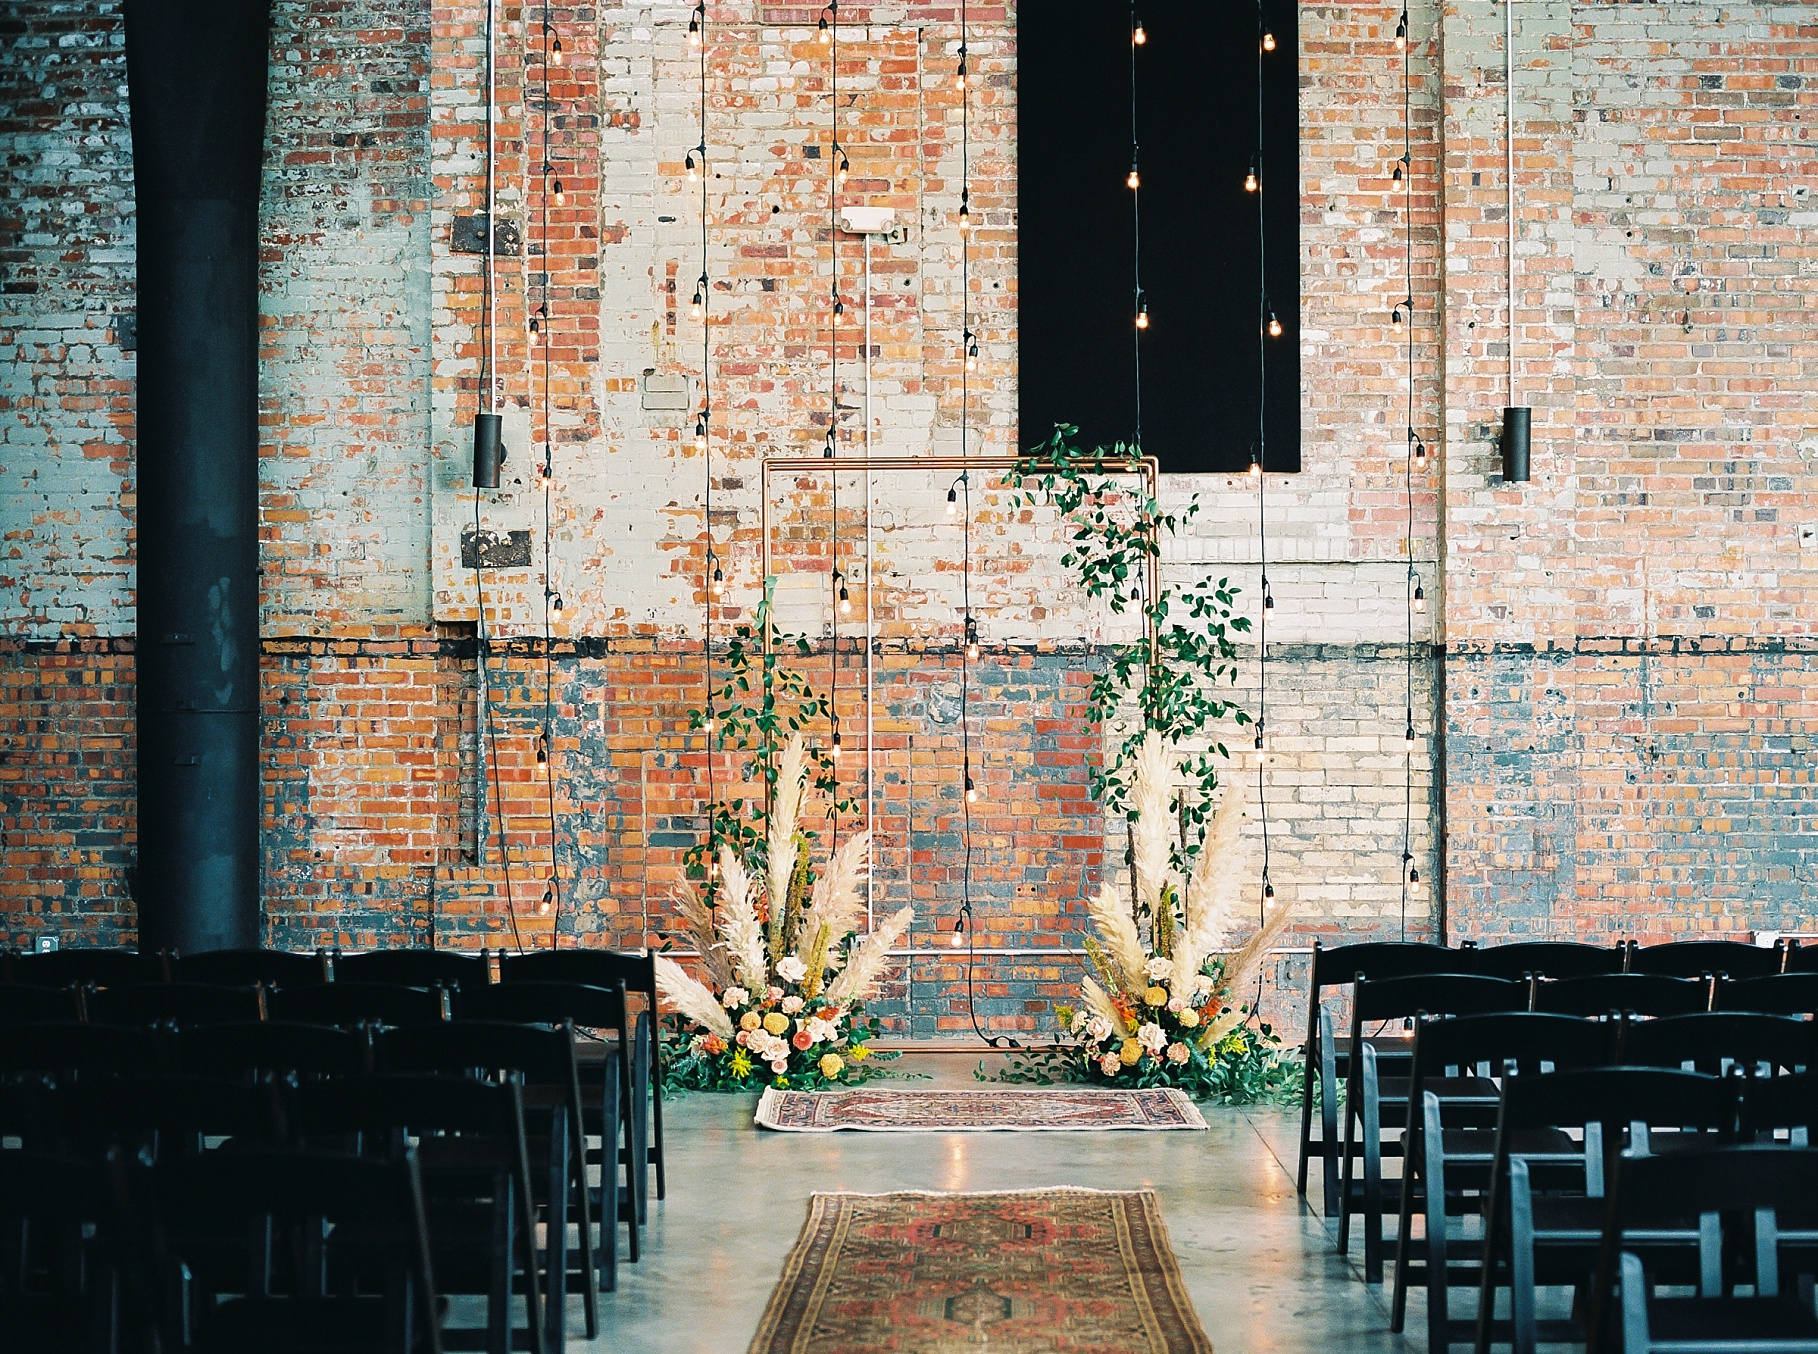 Urban Romance Wedding with Copper Accents at The Millbottom by Kelsi Kliethermes Photography Best Columbia Missouri Wedding Photographer_0004.jpg